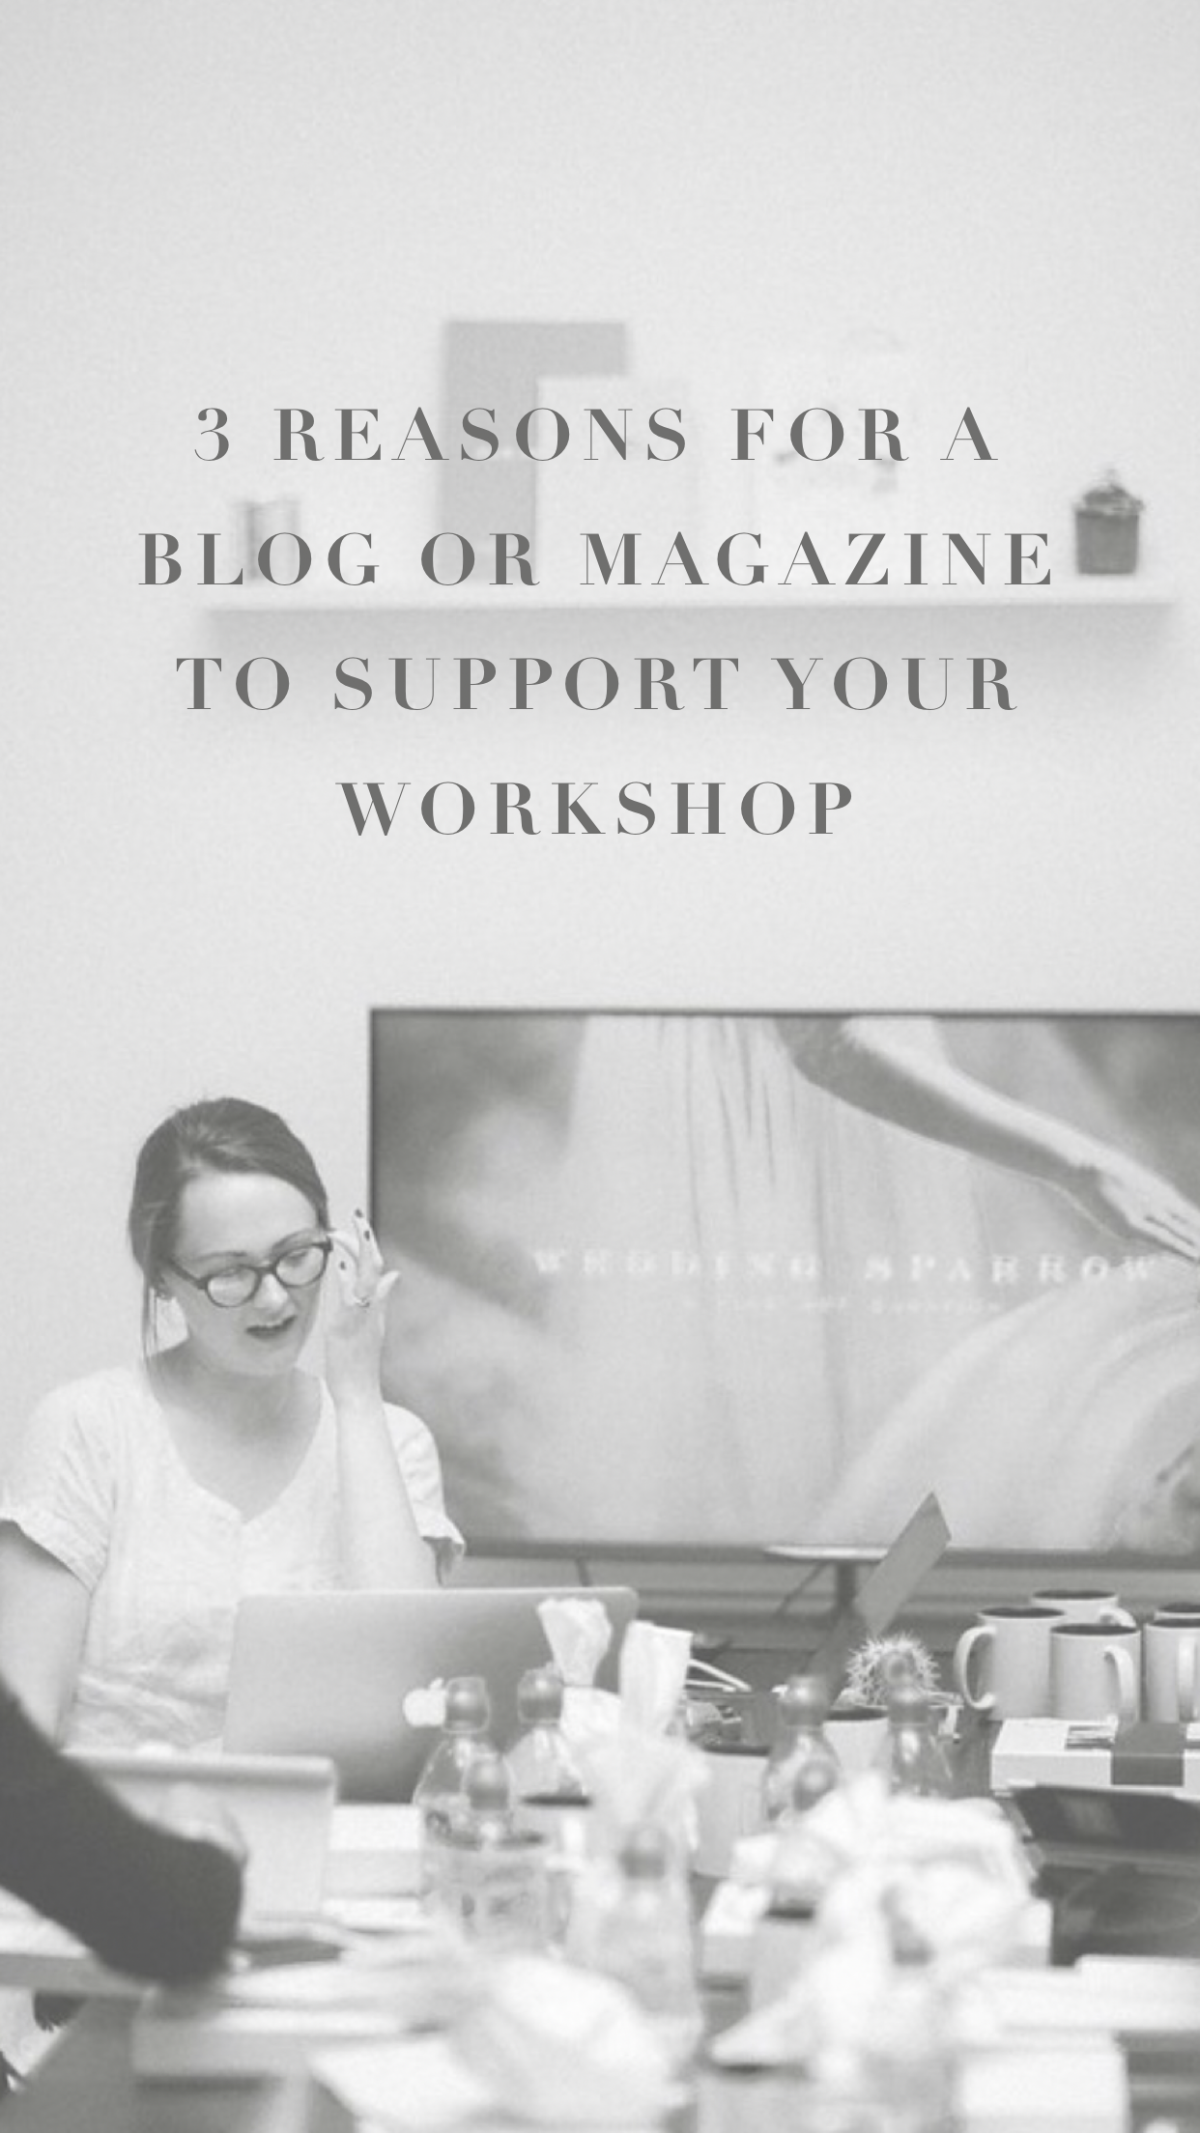 3 reasons why you need a blog or magazine speaker at your workshop